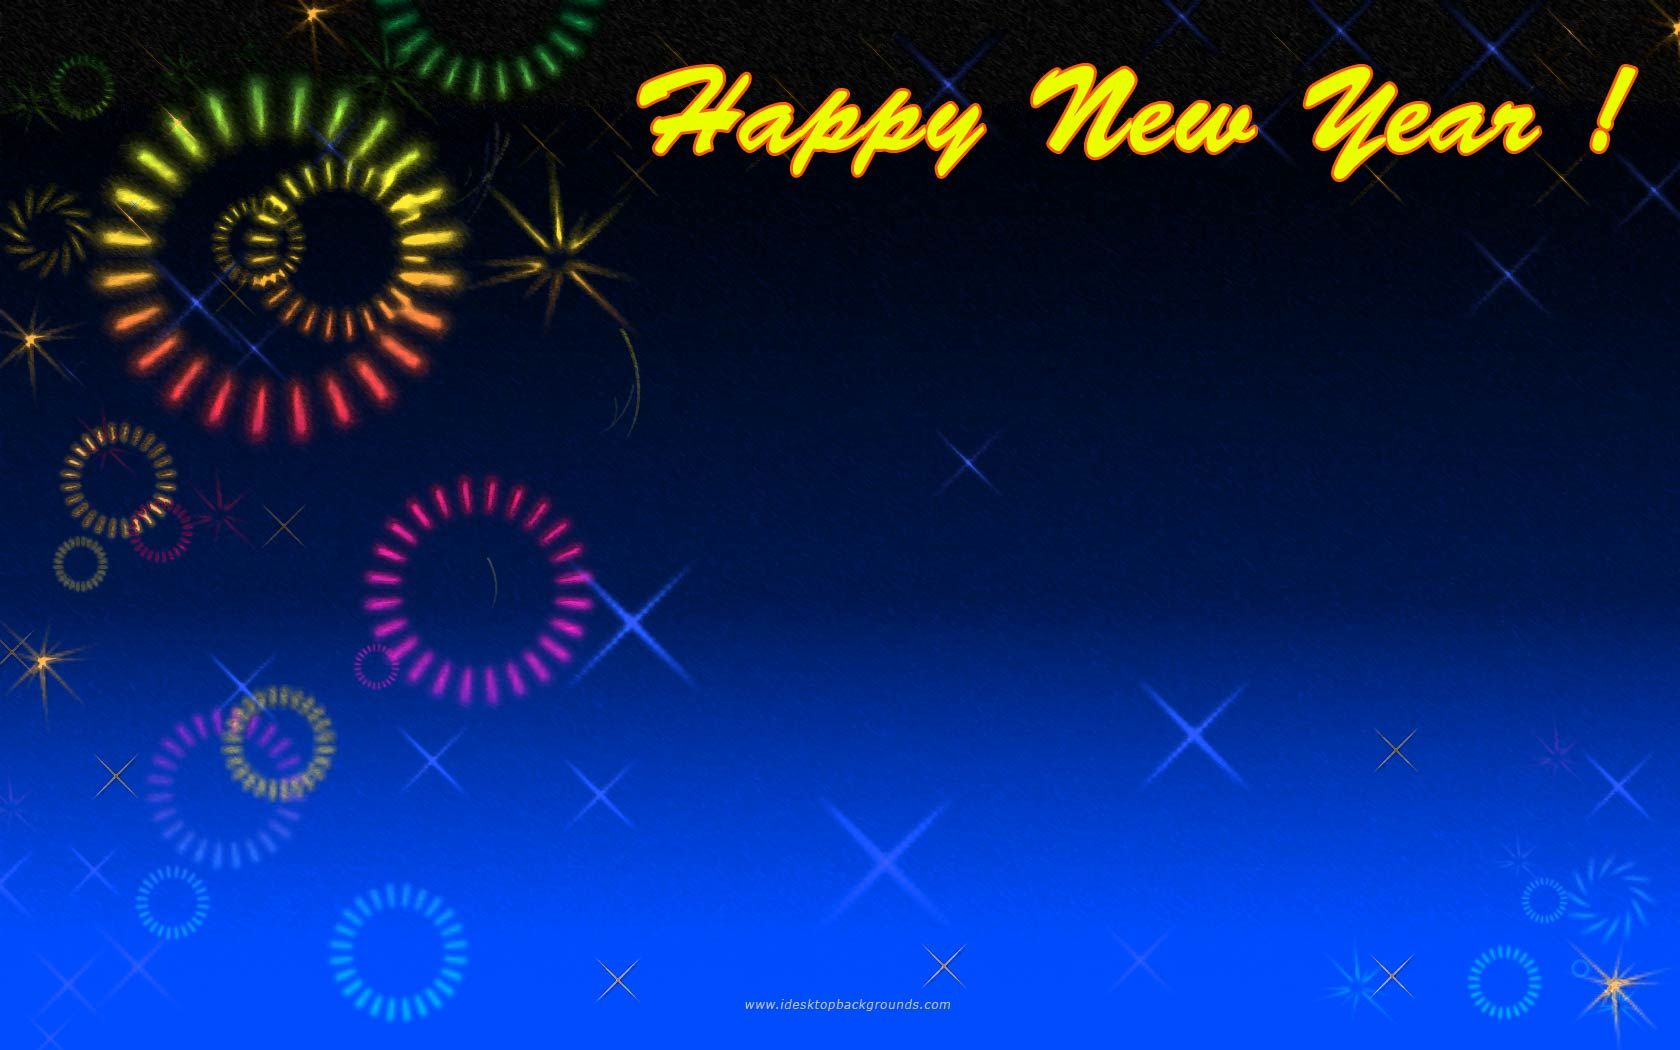 Happy New Year Background Wallpapers At Http Www Hdwallcloud Com Happy New Year Backgrou Happy New Year Wallpaper Happy New Year Images New Year Wallpaper Hd